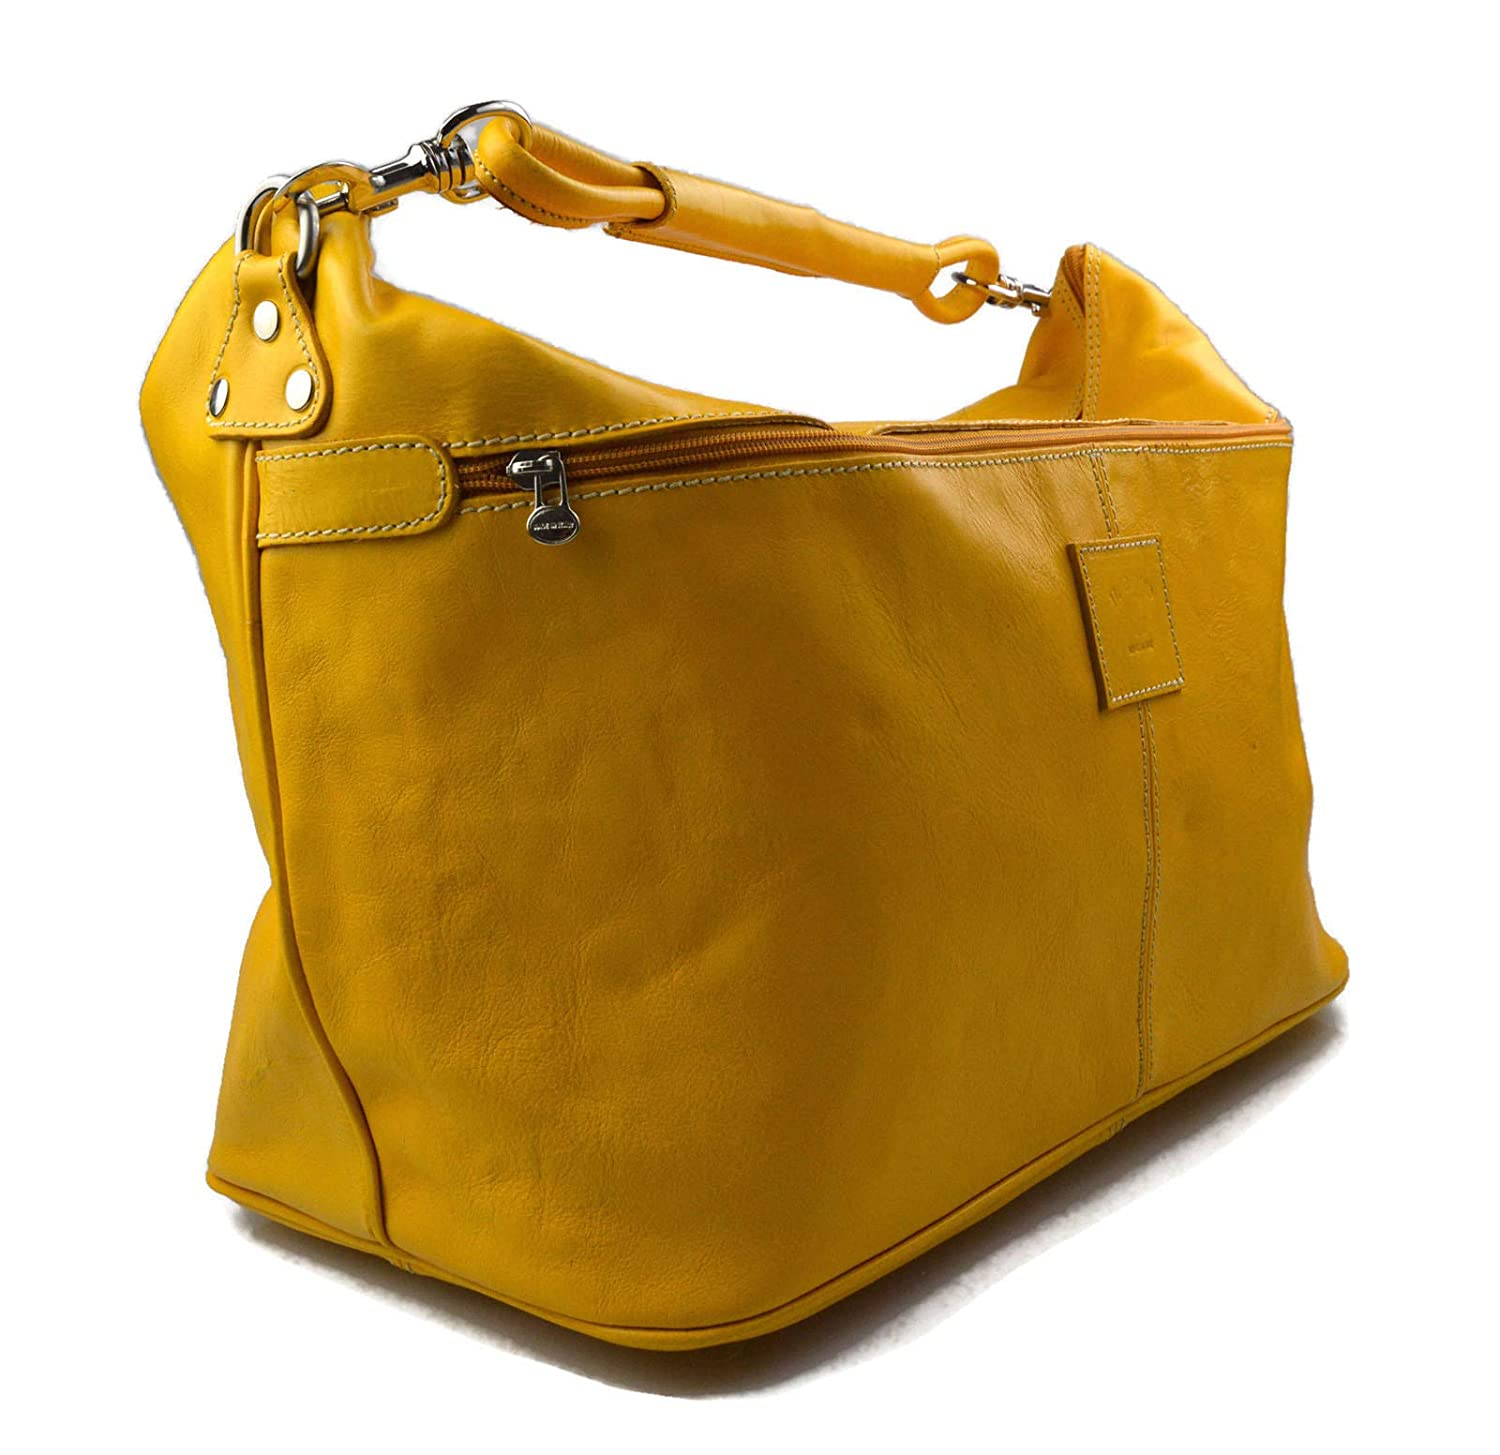 Amazon.com  Duffle bag mens women leather yellow shoulder bag travel bag  luggage leather bag weekender carryon made in Italy airplane duffle bag   Handmade 987defb269190